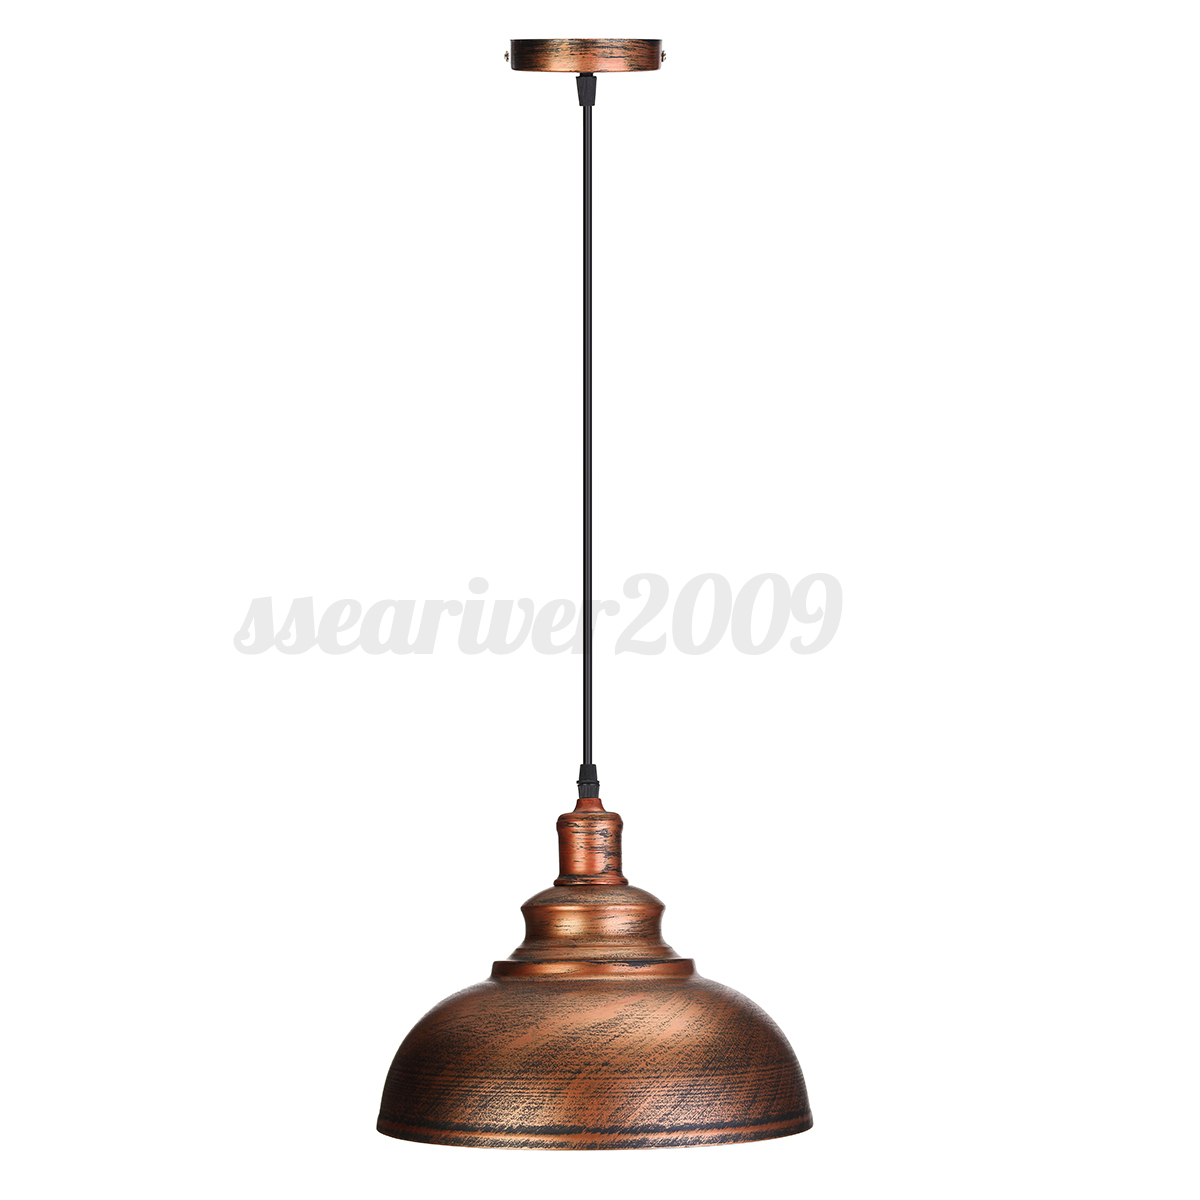 Pendant Bar Lighting Metal Vintage Ceiling Light Modern Chandelier Pendant